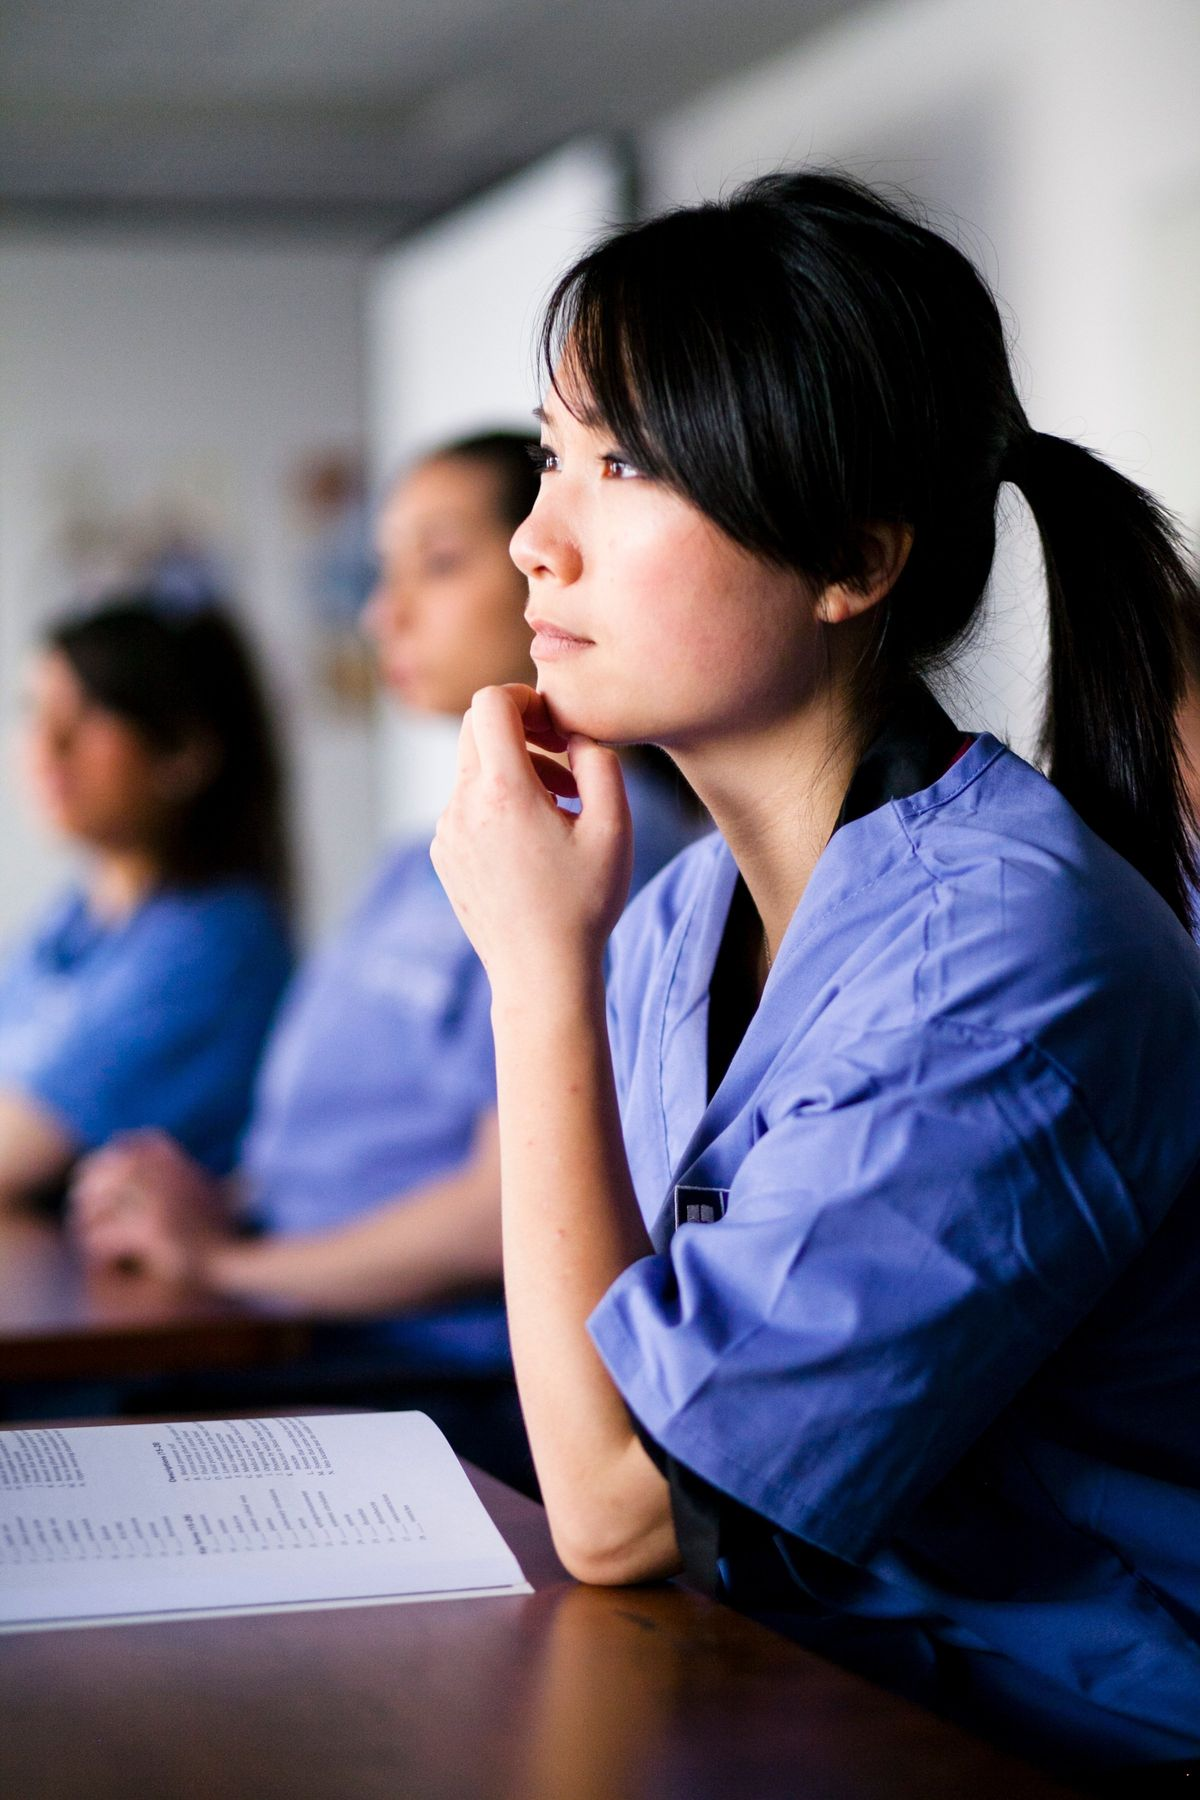 How_To_Excel_On_Your_Medical_Assistant_Externship_3-1.jpg?t=1505928226845&width=320&cos_cdn=1&name=How_To_Excel_On_Your_Medical_Assistant_Externship_3-1.jpg